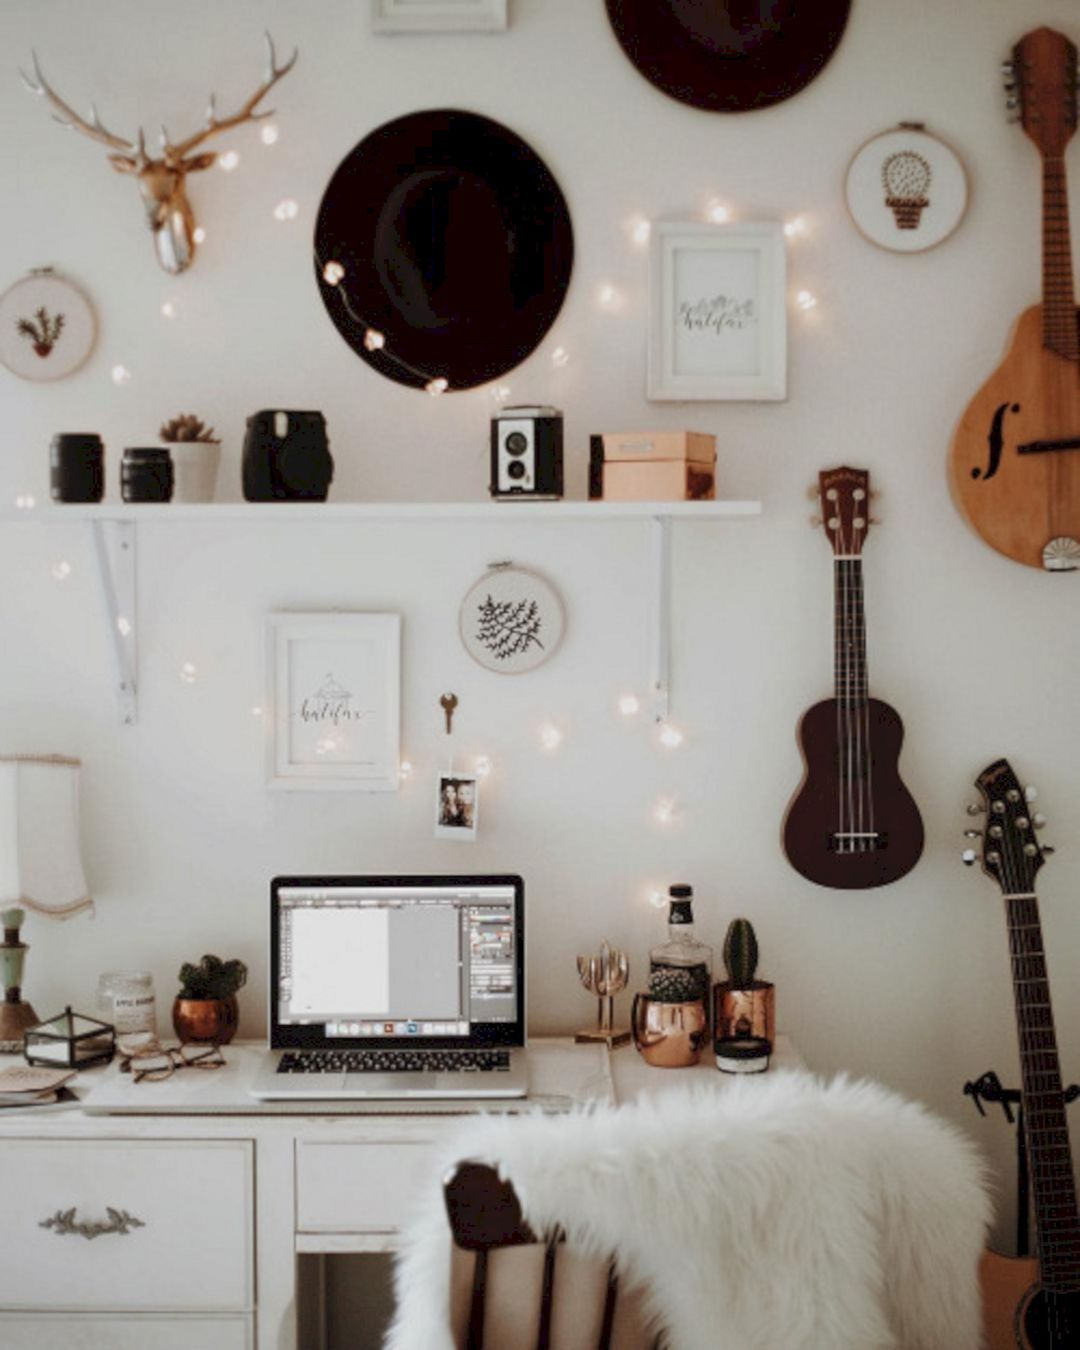 Aesthetic Room Decors Tumblrs (Aesthetic Room Decors Tumblrs) design ideas and photos images